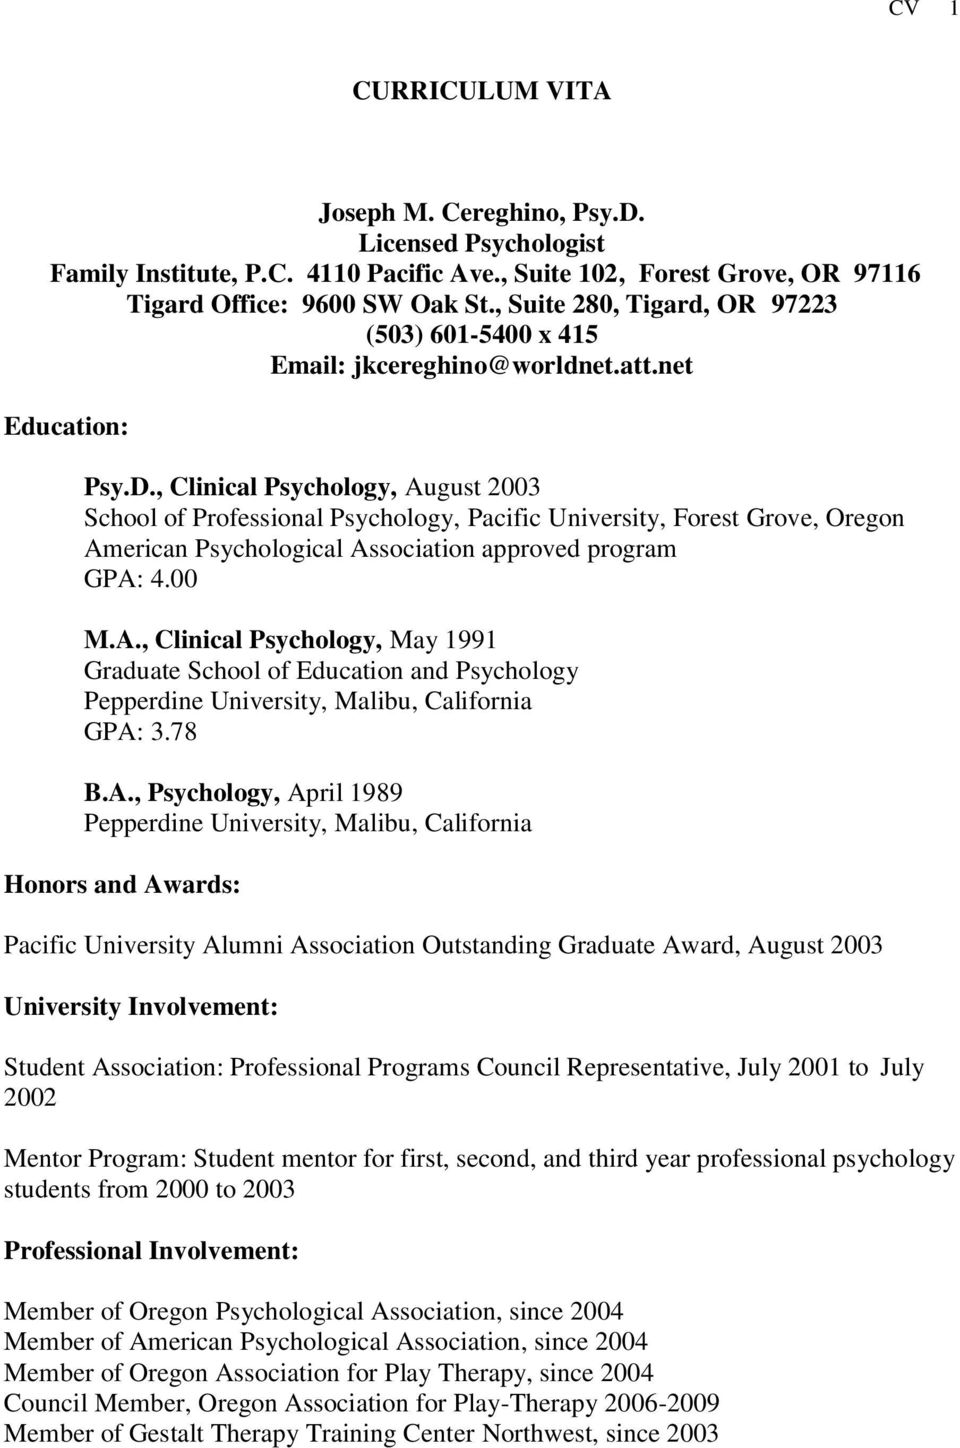 , Clinical Psychology, August 2003 School of Professional Psychology,, Forest Grove, Oregon American Psychological Association approved program GPA: 4.00 M.A., Clinical Psychology, May 1991 Graduate School of Education and Psychology Pepperdine University, Malibu, California GPA: 3.